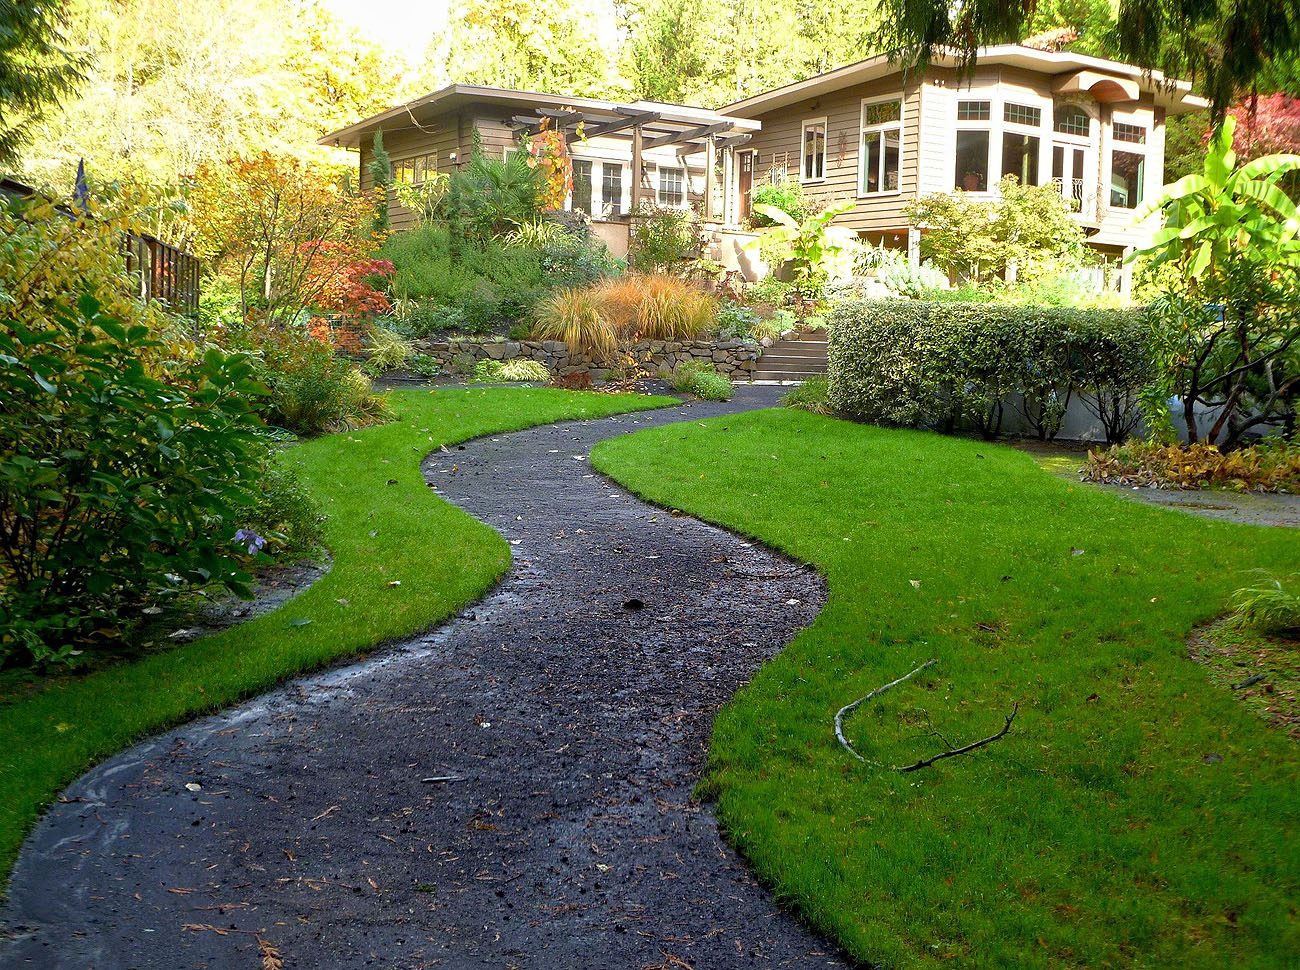 Allwinds Grounds Ltd professional grounds maintenance to multi acre sites such as apartment complexes, estates, manor estates, heritage gardens and business premises